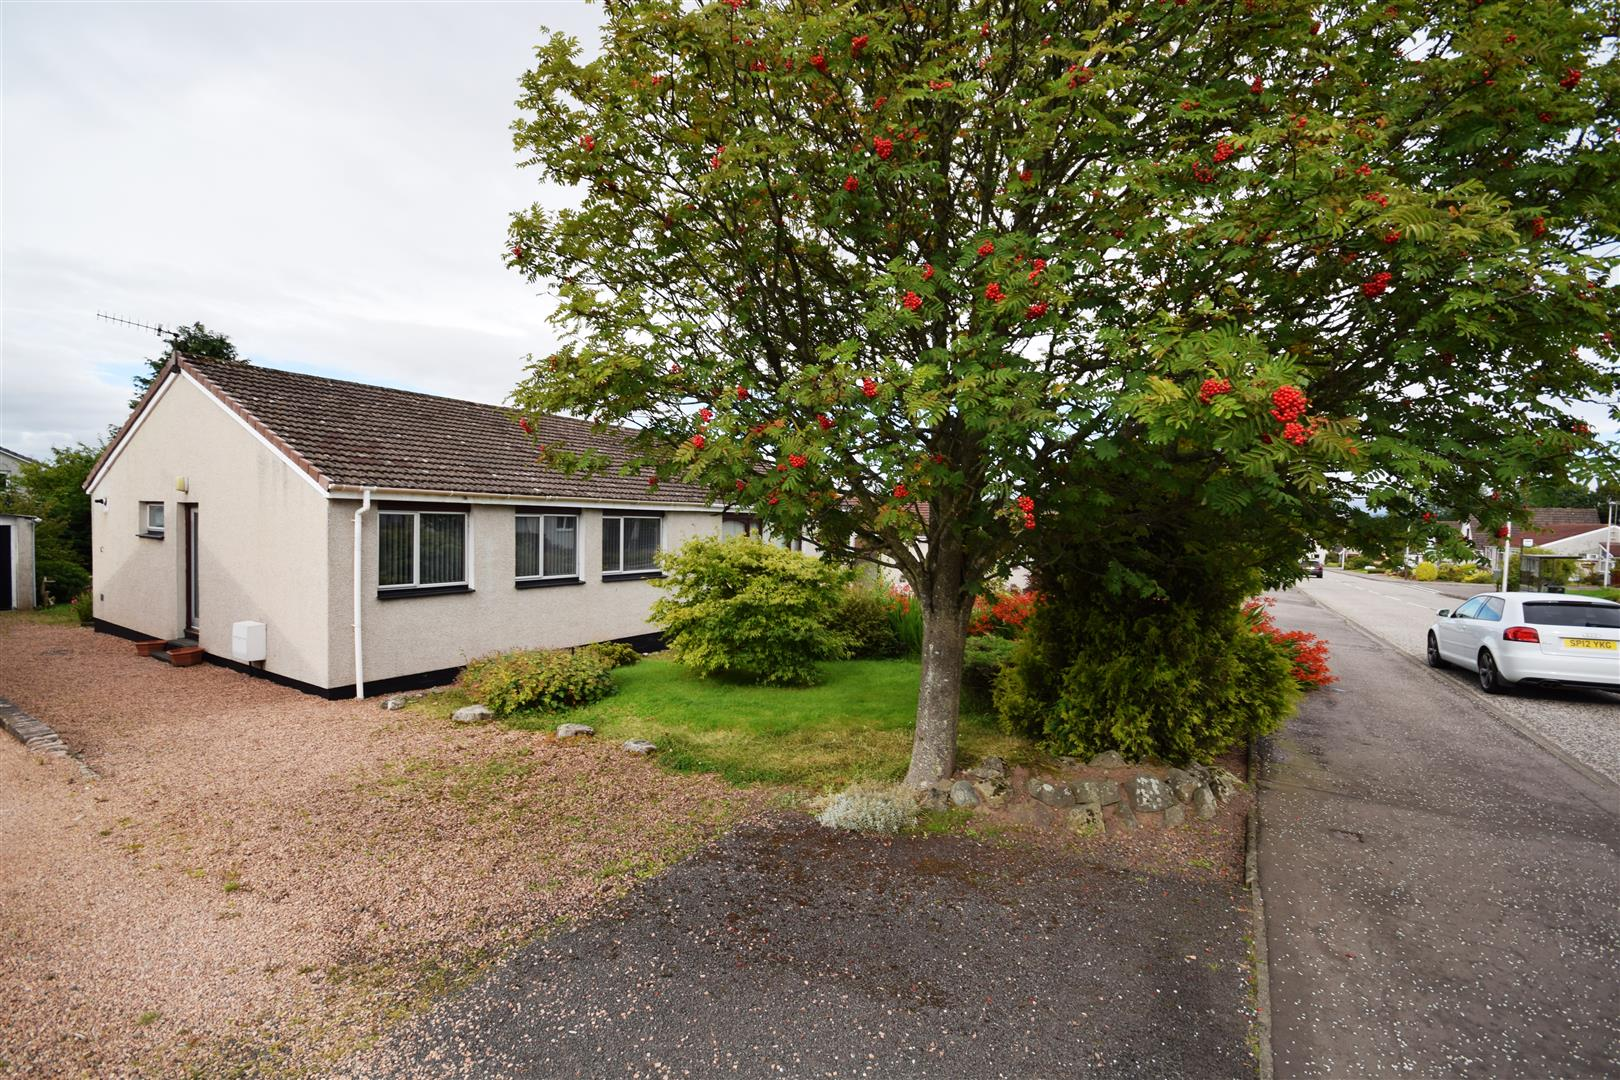 66, Alder Drive, Perth, Perthshire, PH1 1EU, UK